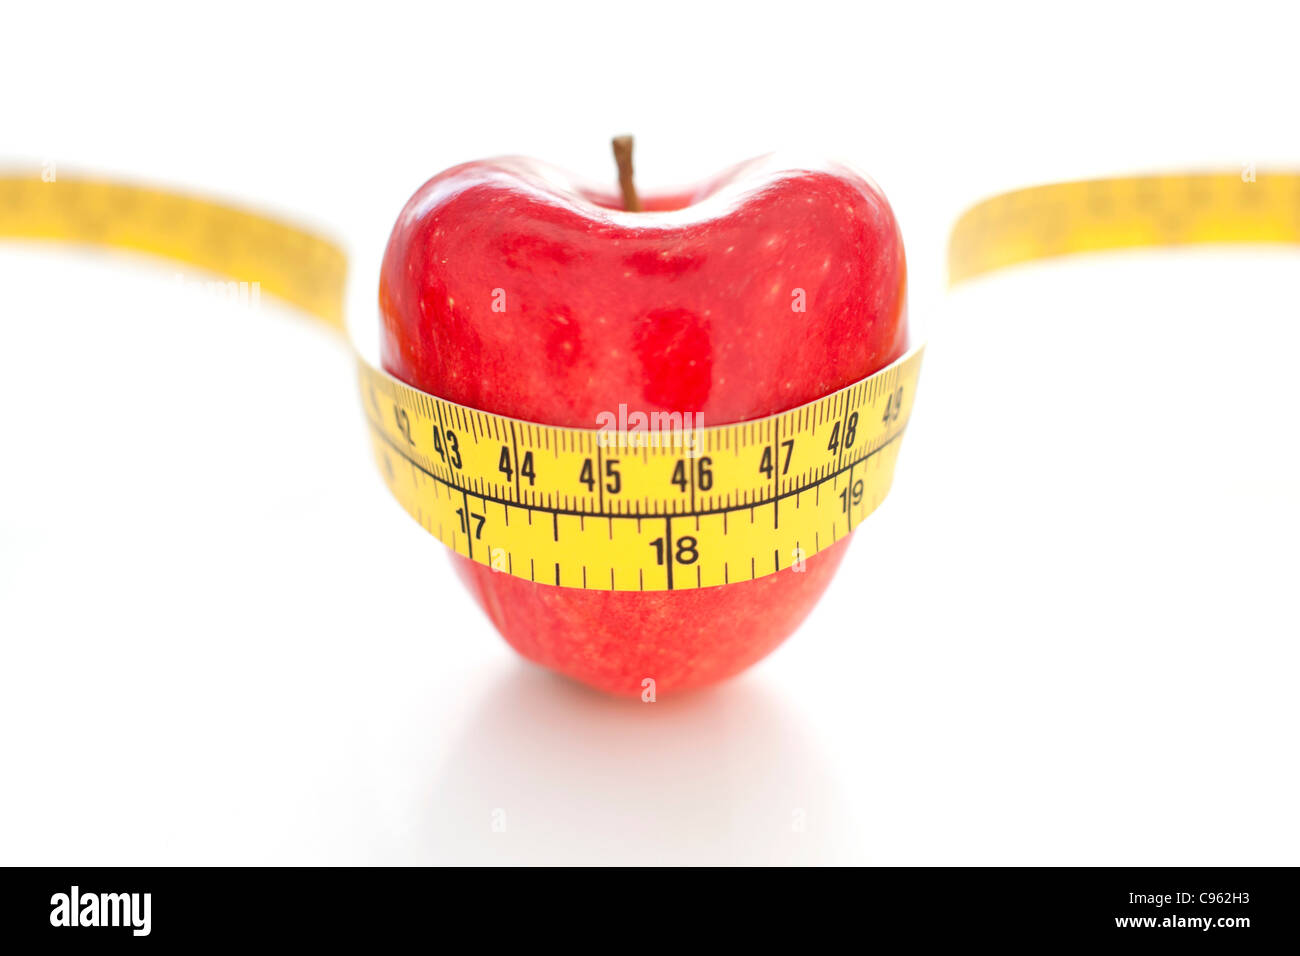 Dieting, conceptual image. - Stock Image